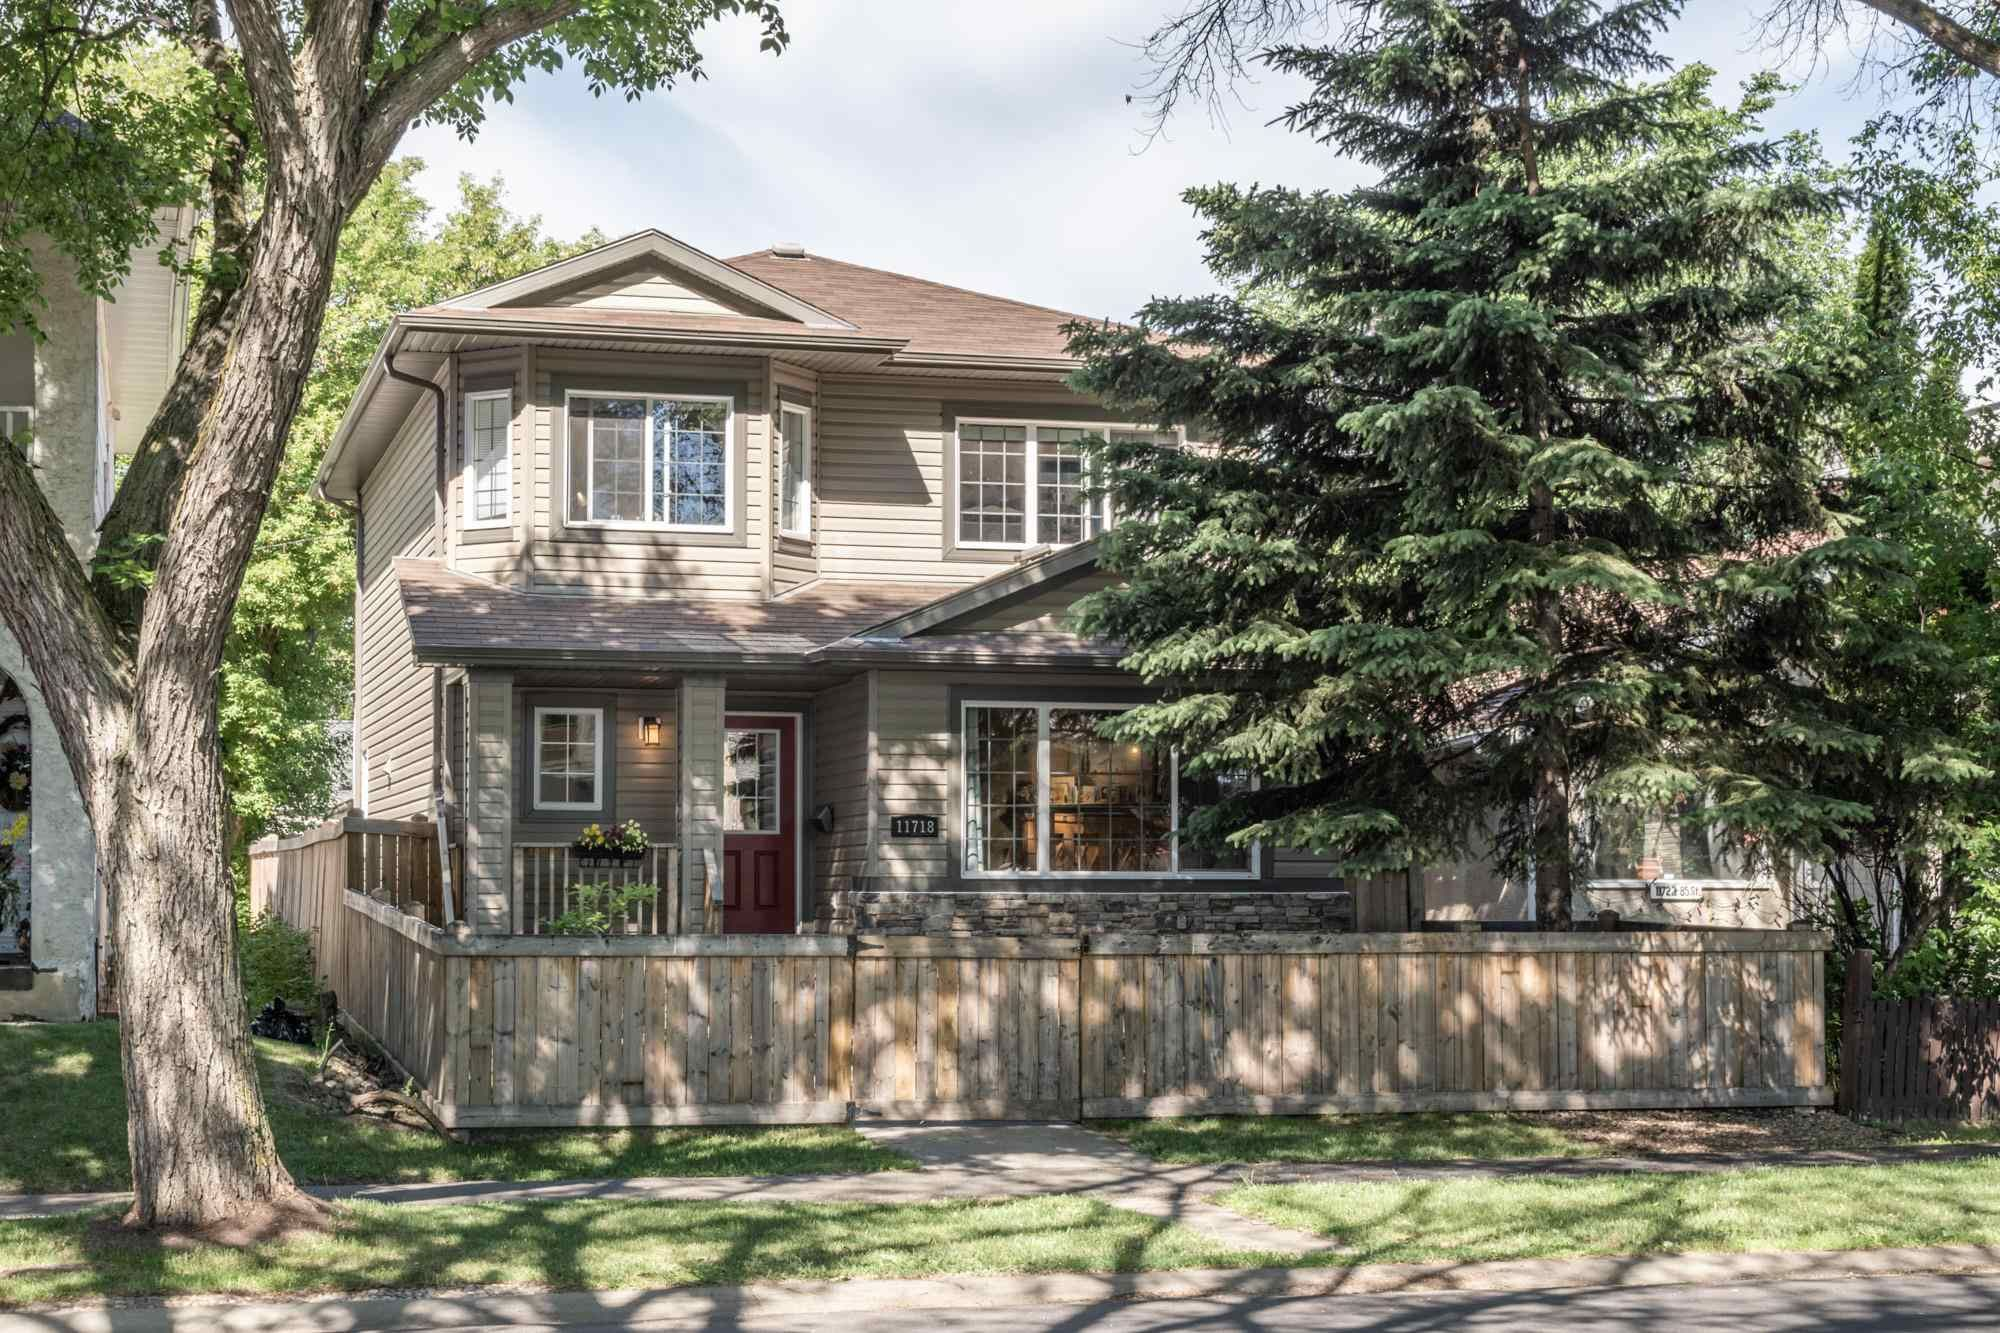 Main Photo: 11718 85 Street NW in Edmonton: Zone 05 House for sale : MLS®# E4251821